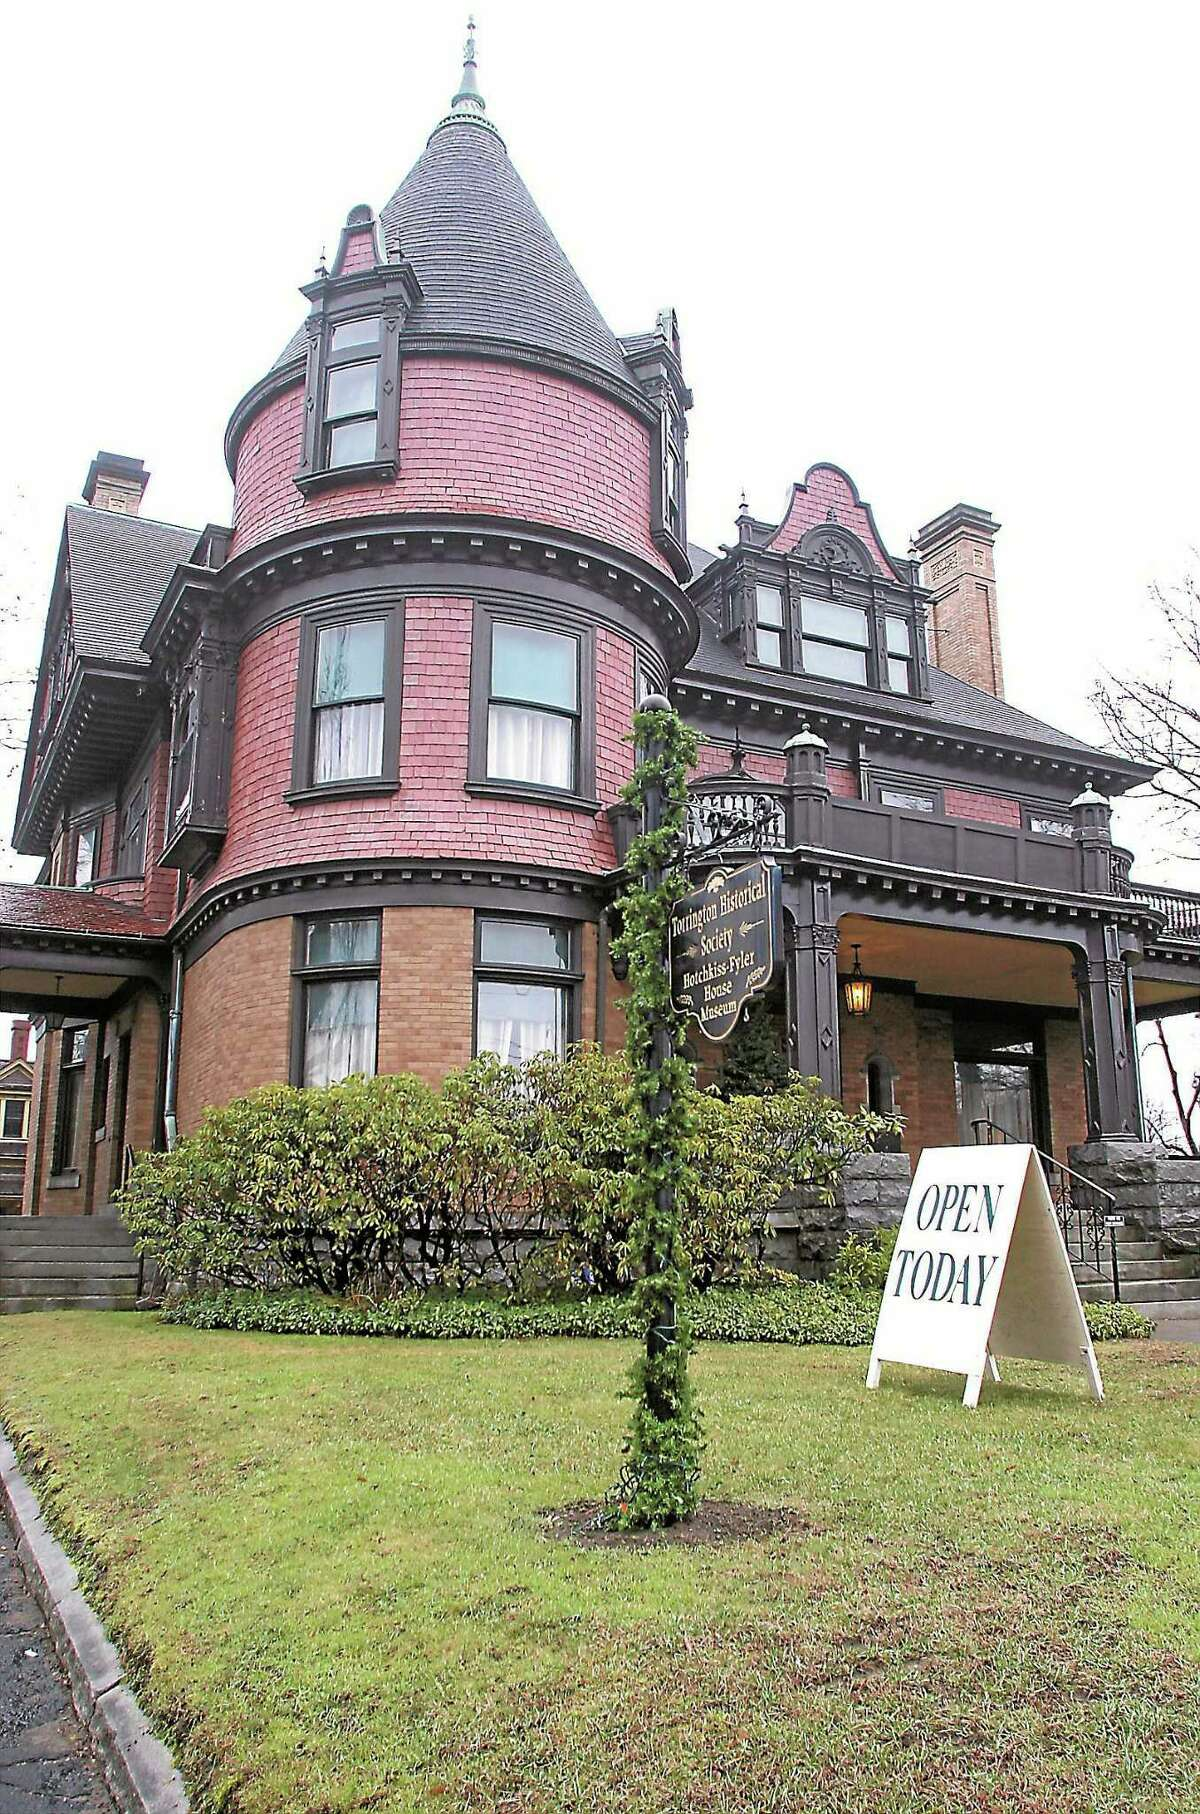 The Hotchkiss-Fyler house in Torrington will be open during the anniversary celebration.